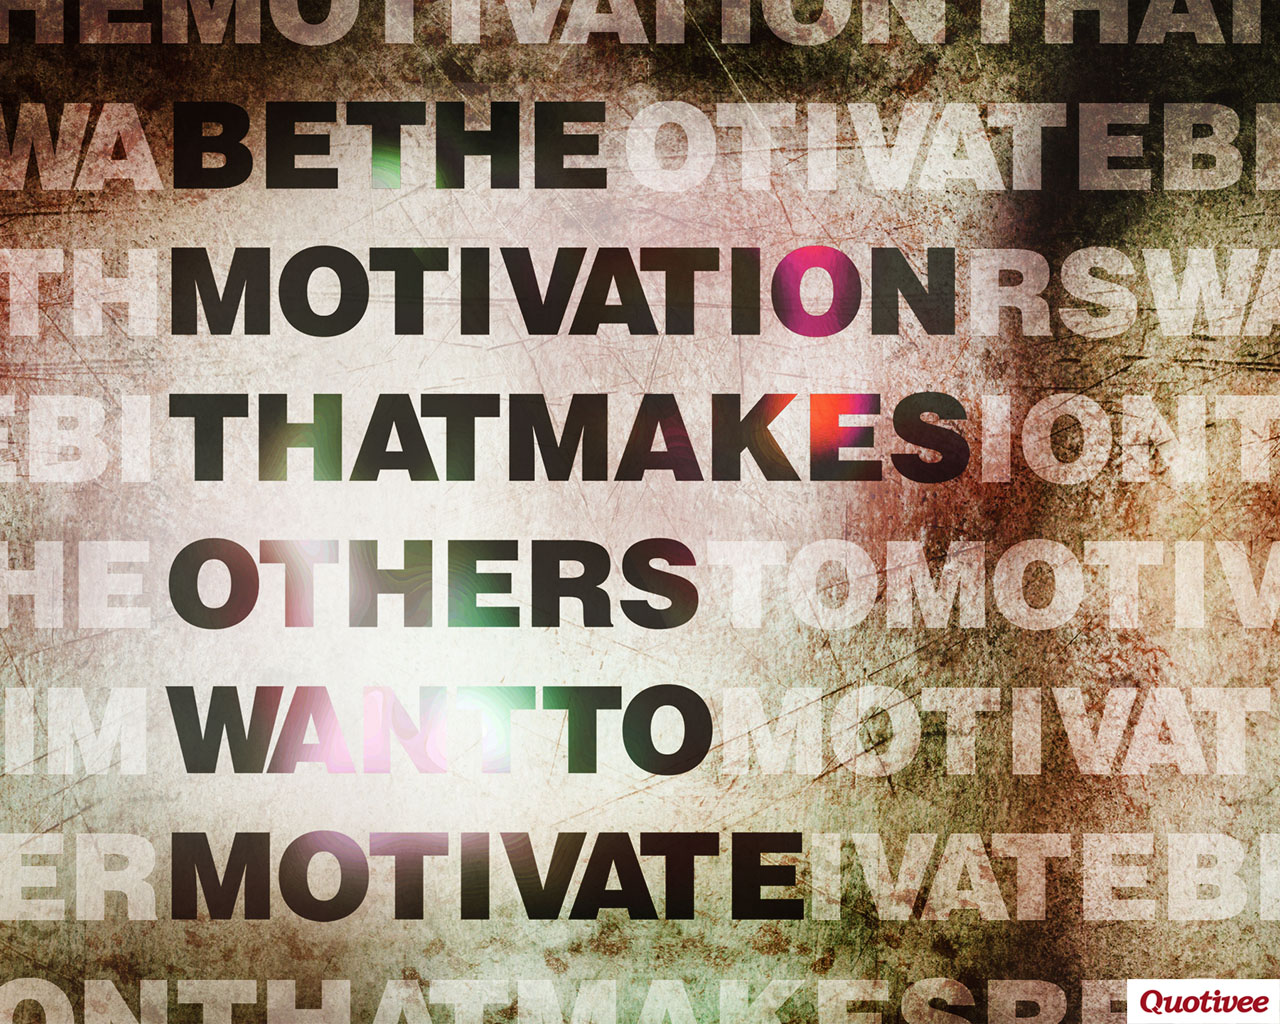 quotivee_post_1280x1024_0004_Be The Motivation